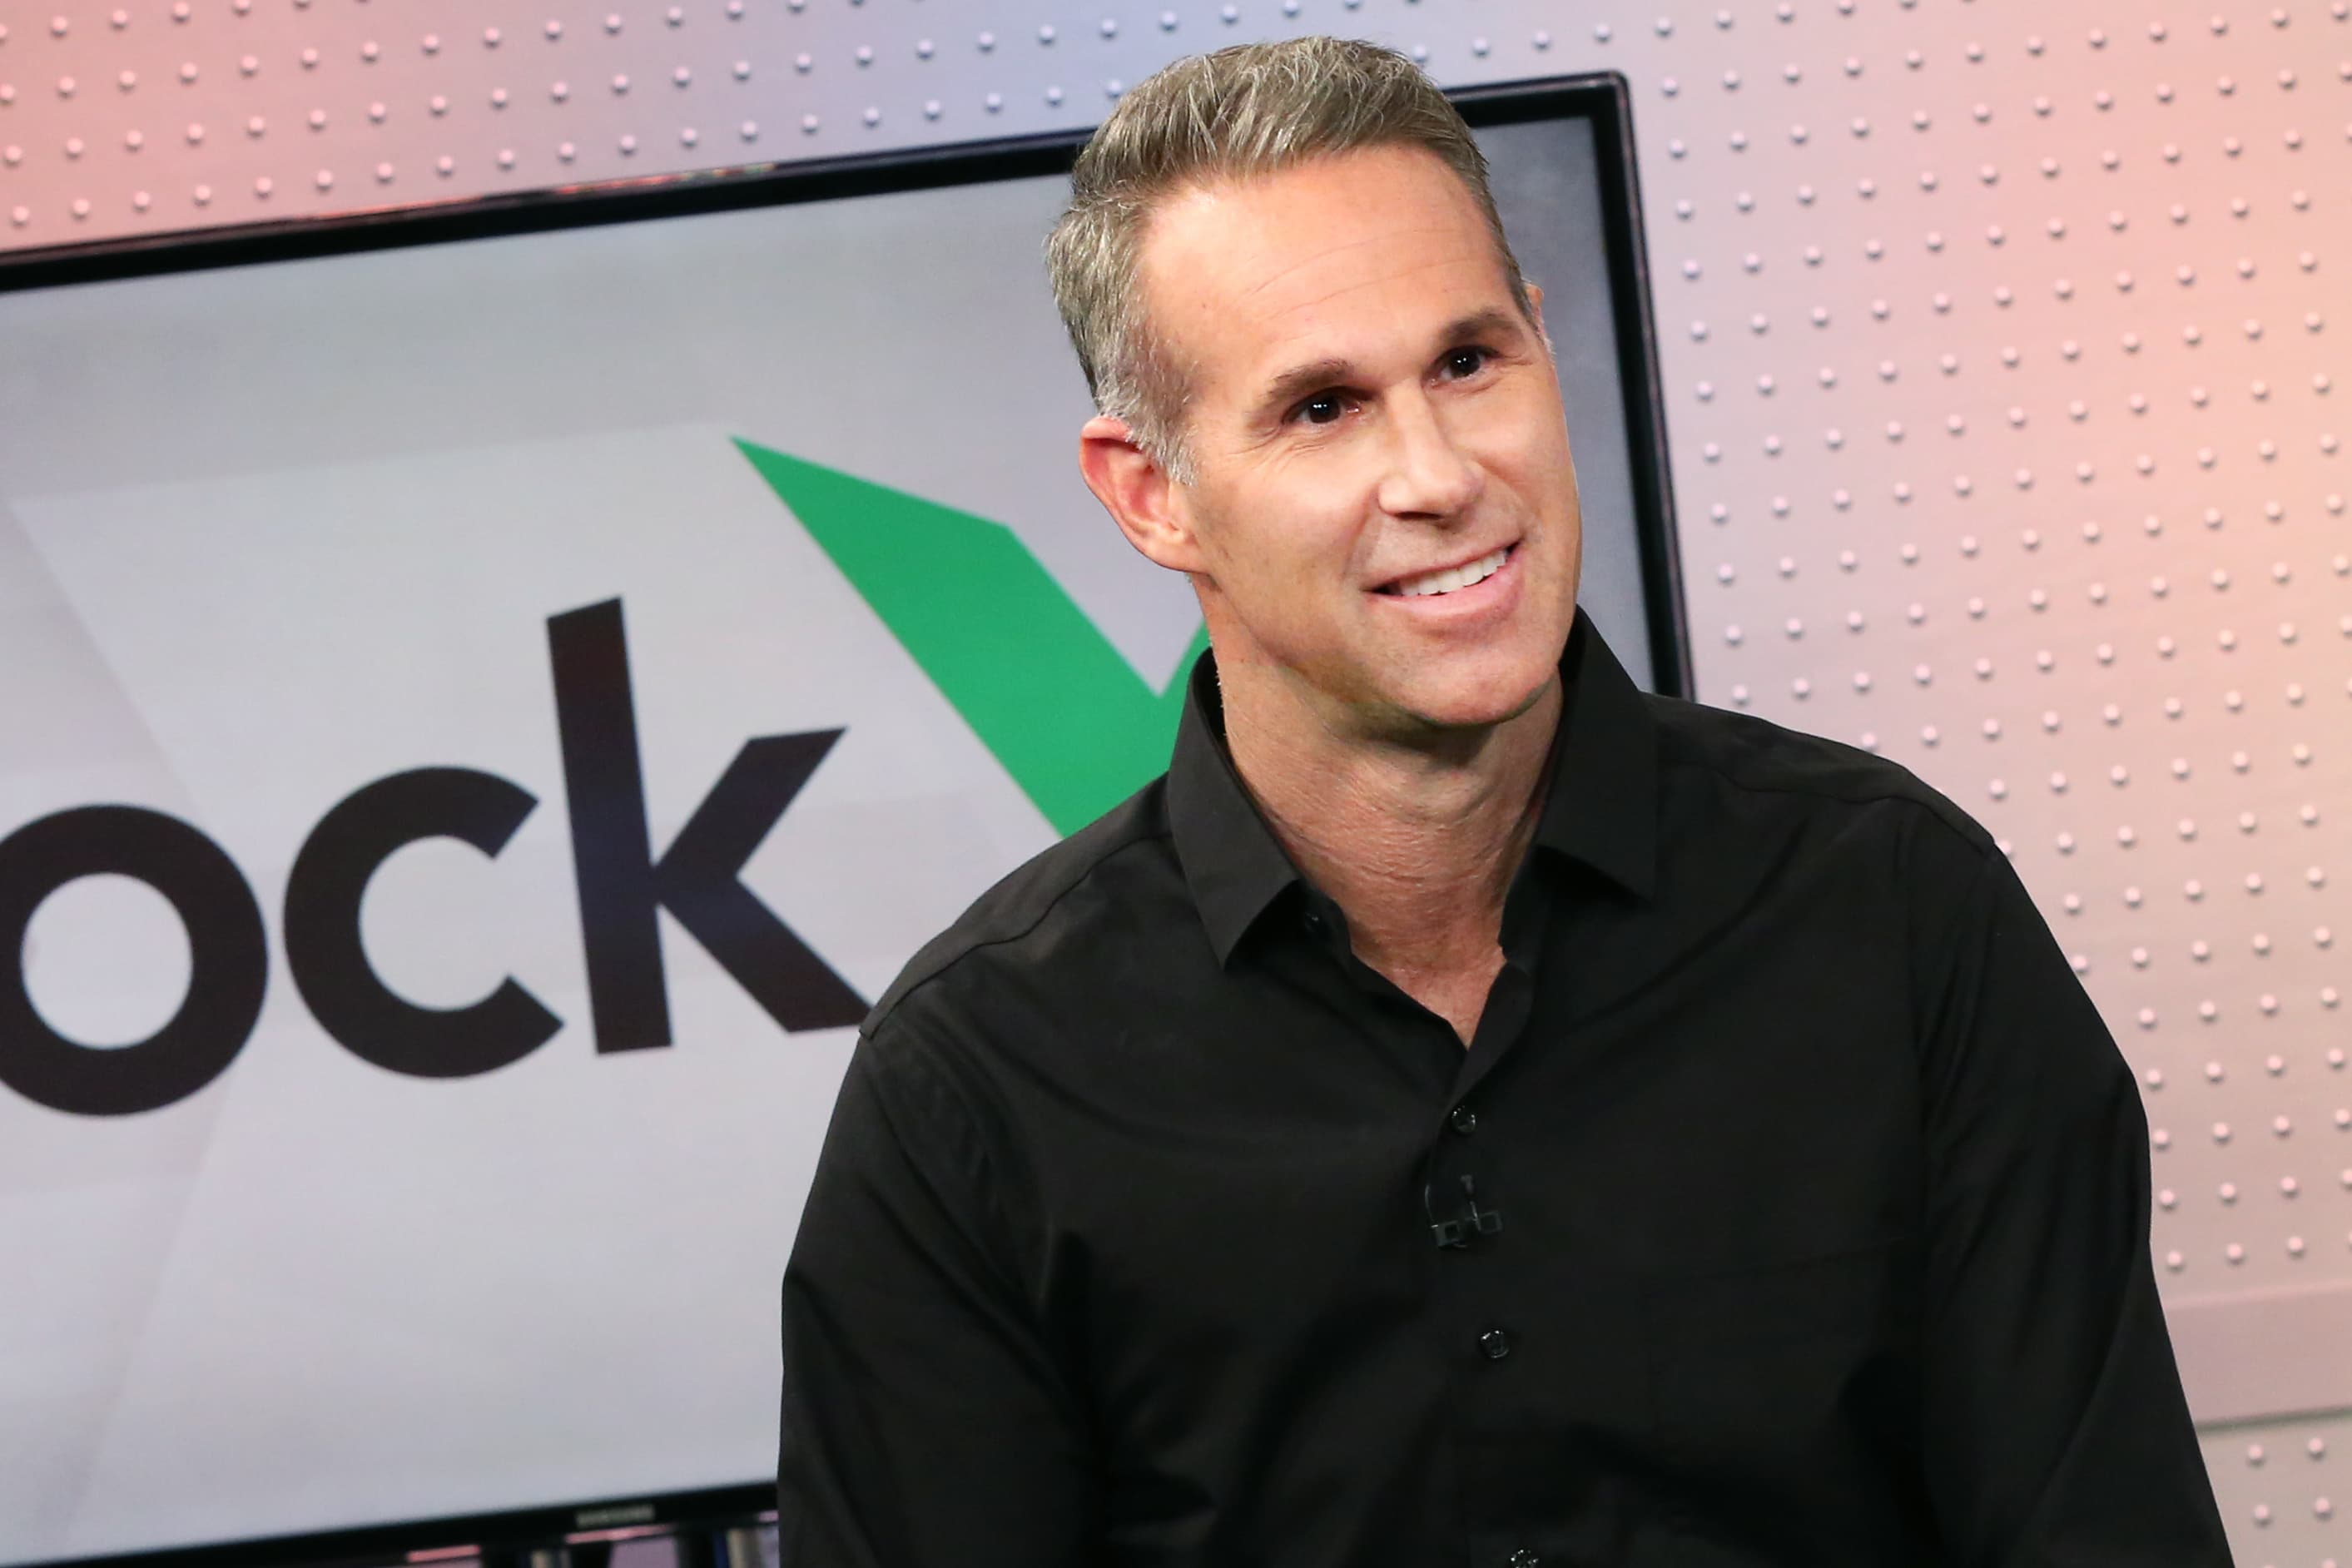 StockX's new CEO tells Jim Cramer going public is 'certainly our objective as a company'